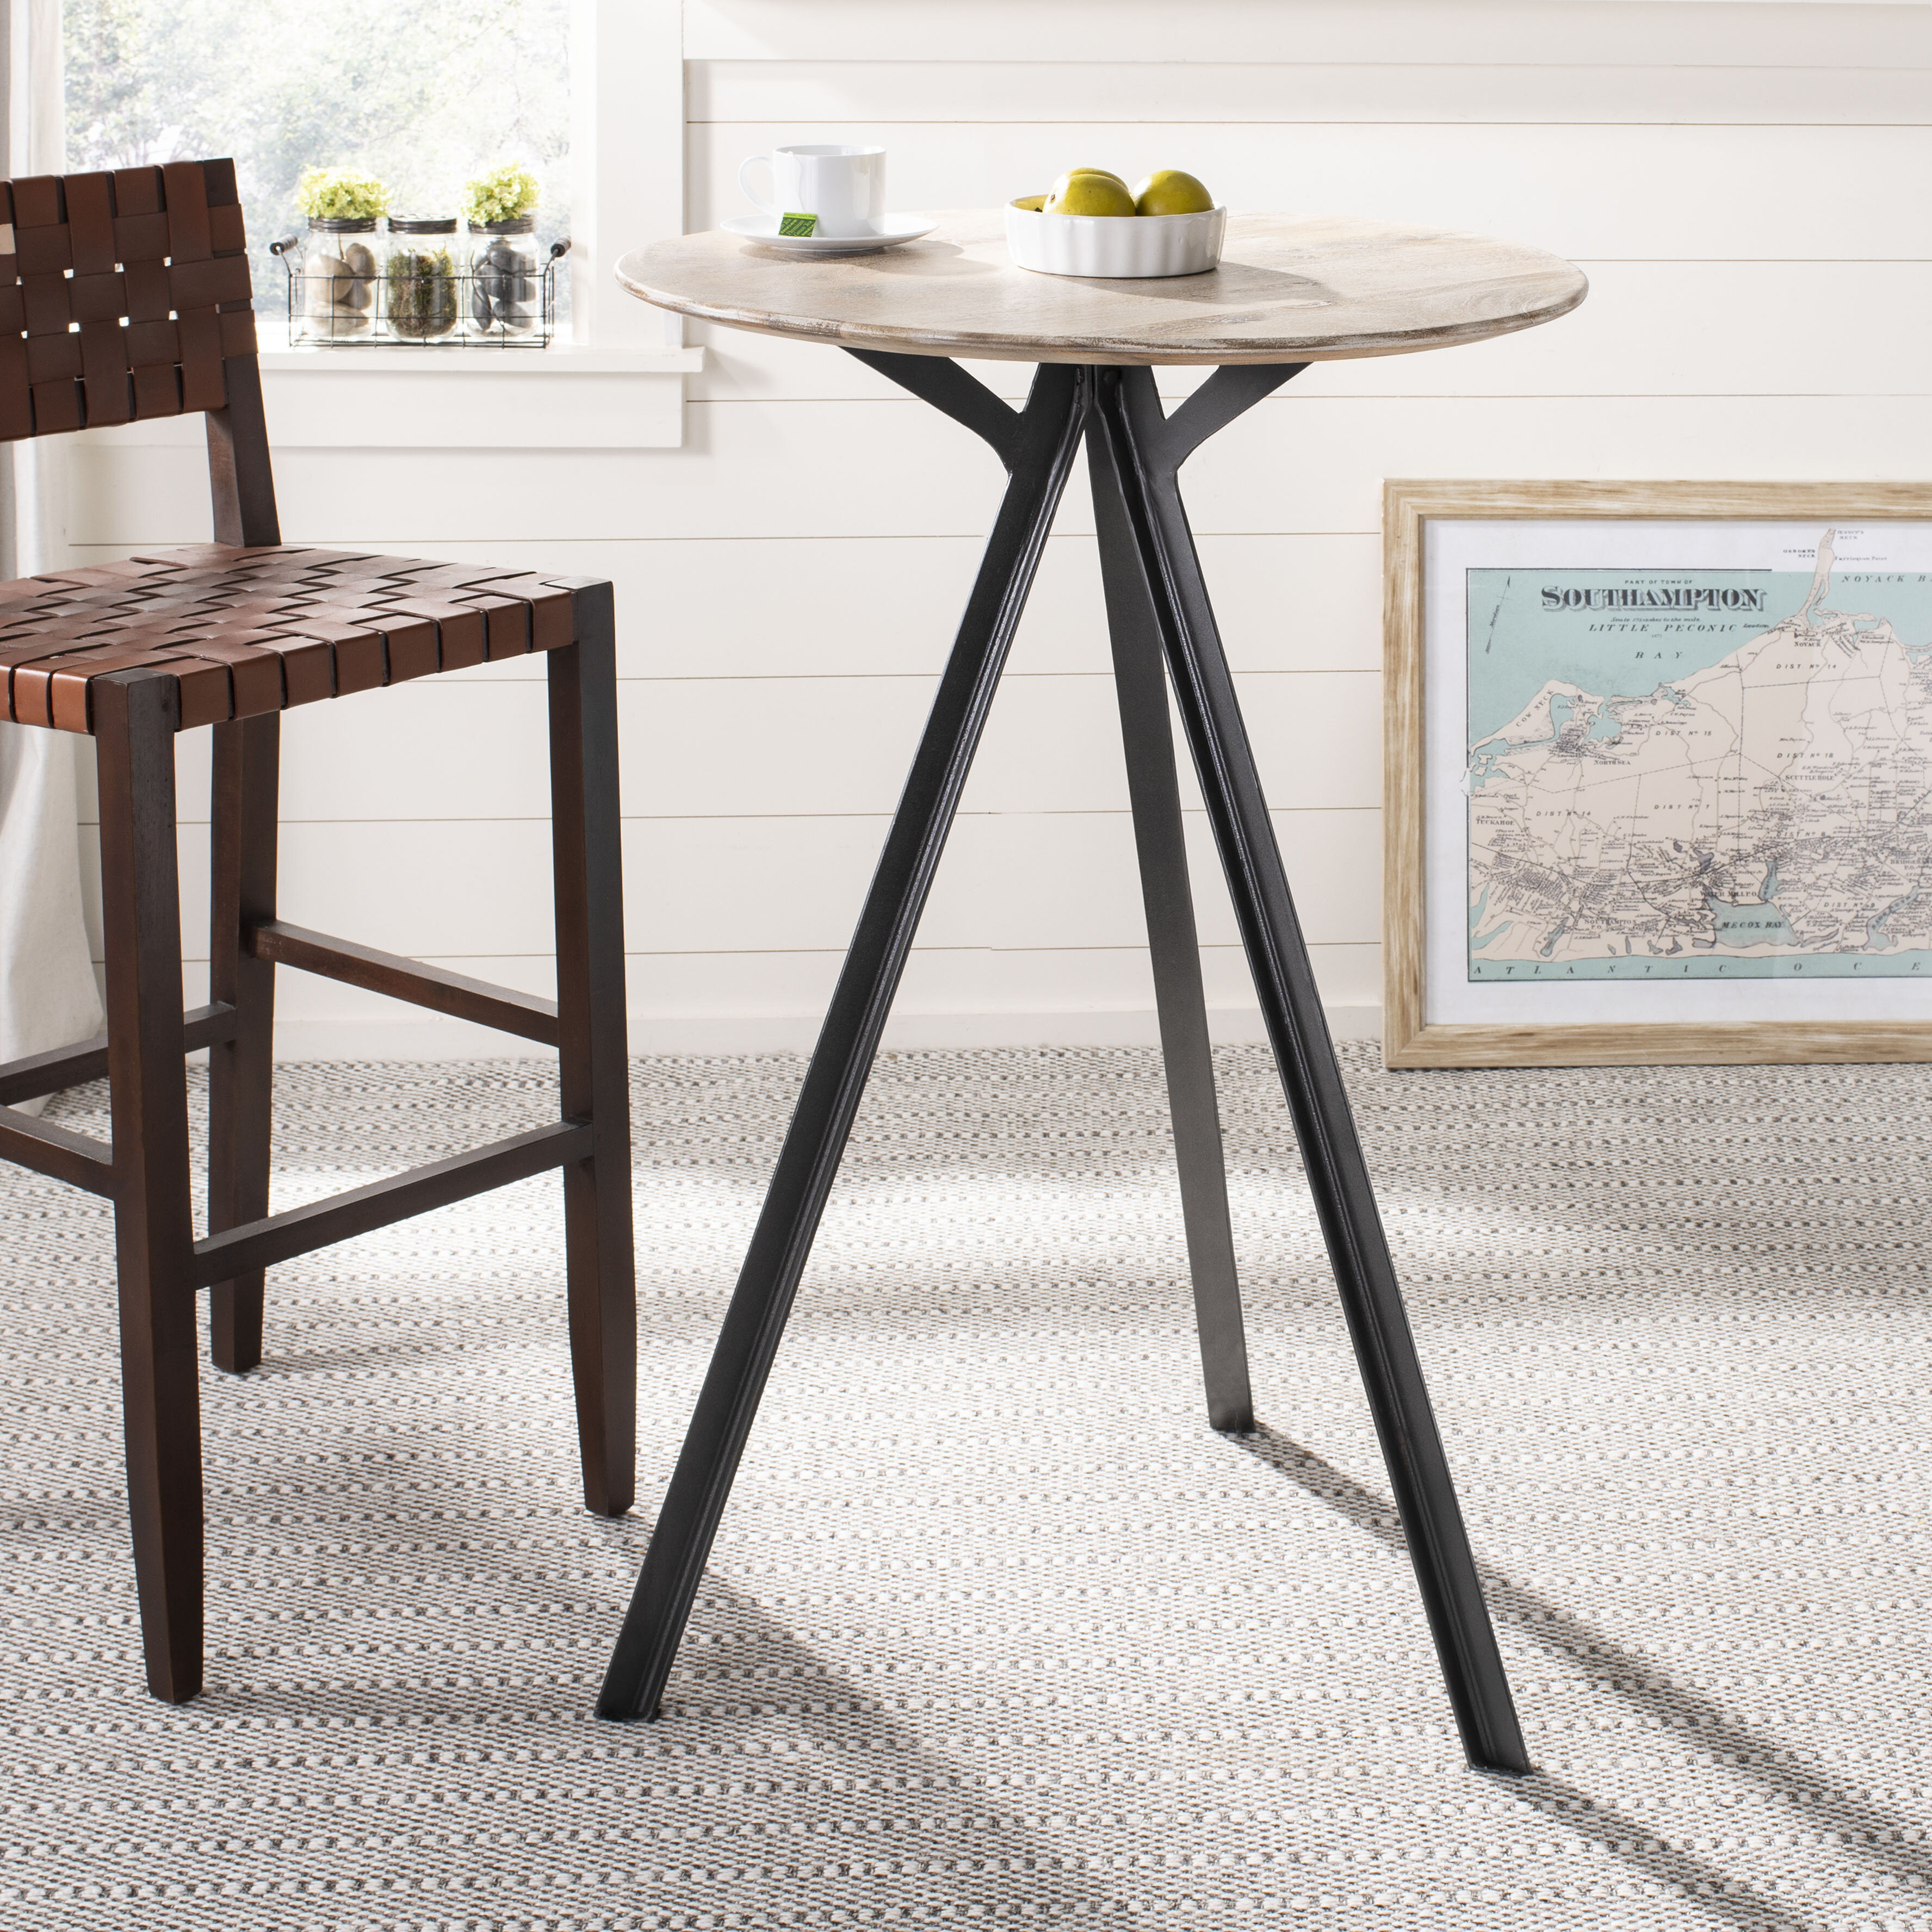 Bar 41 43 Glam Kitchen Dining Tables You Ll Love In 2021 Wayfair